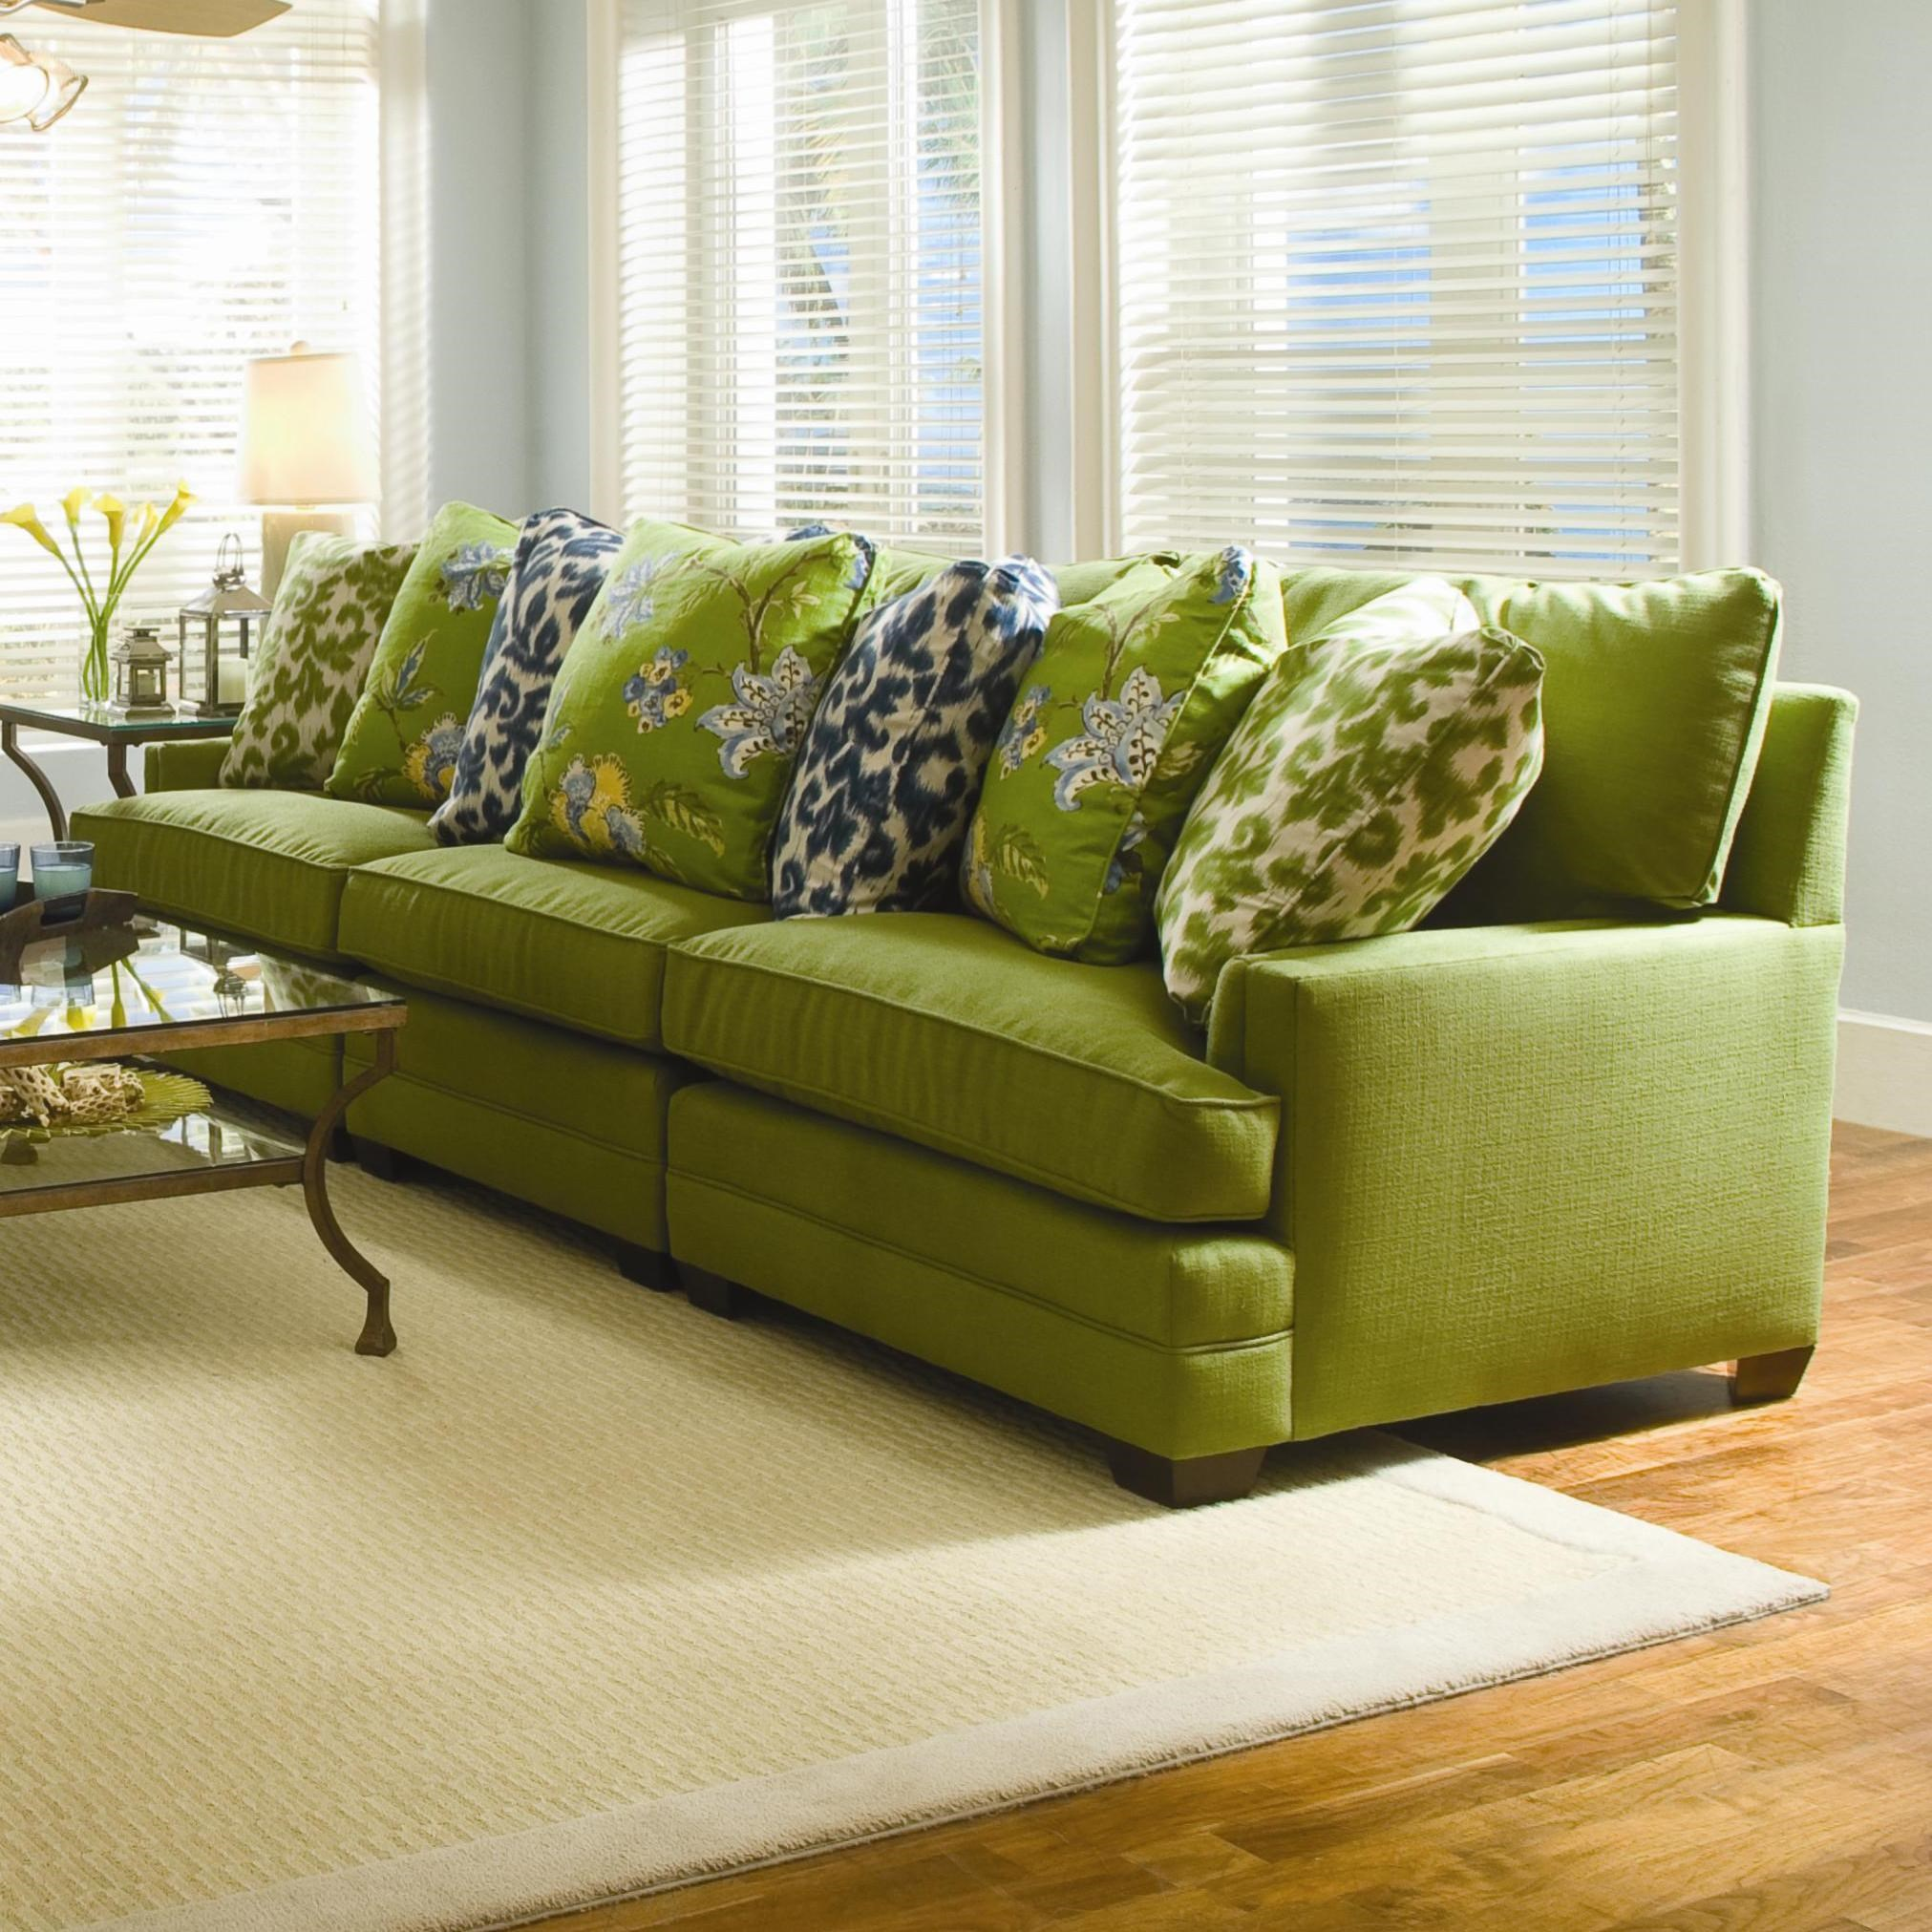 Sofa S Margo Extra Wide Sectional Sofa By Sam Moore At Dunk Bright Furniture